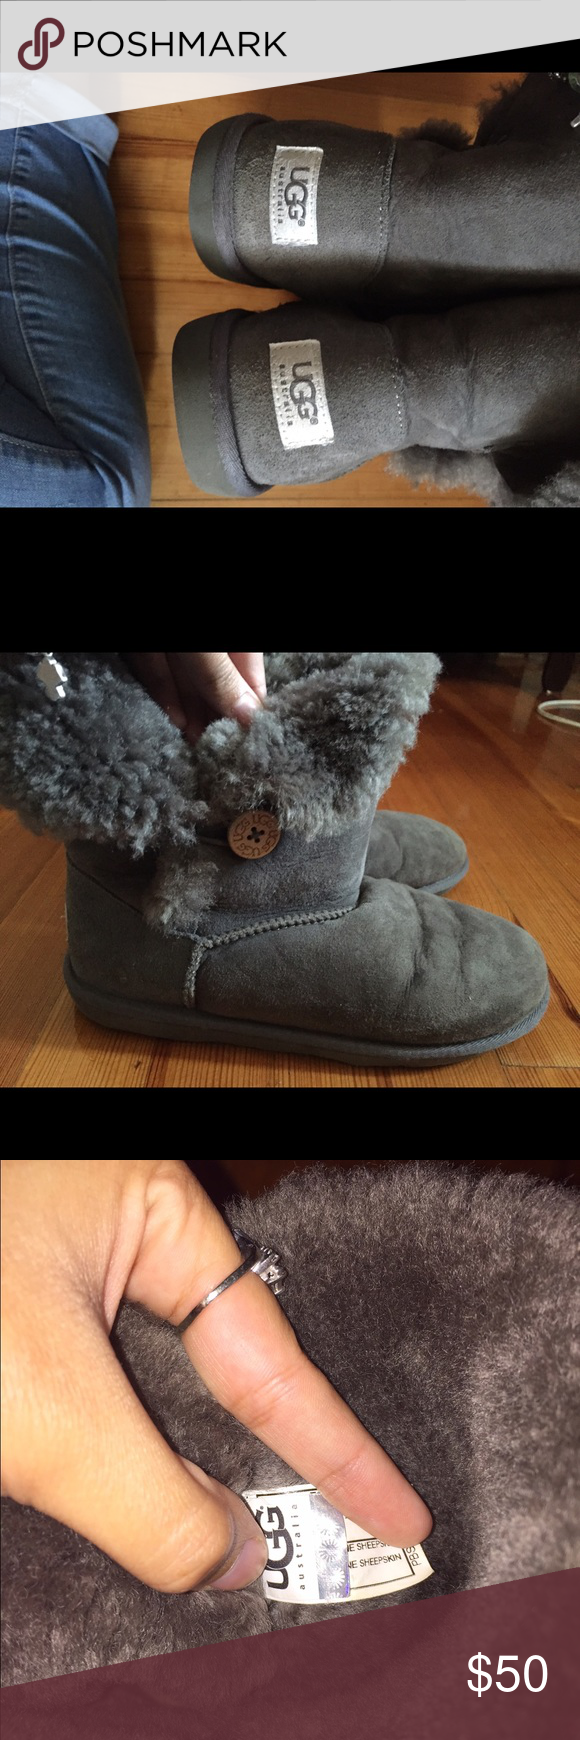 Short Grey Bailey Button UGGS Worn, still has some life left. Right boot folds down. Slight creases. UGG Shoes Winter & Rain Boots